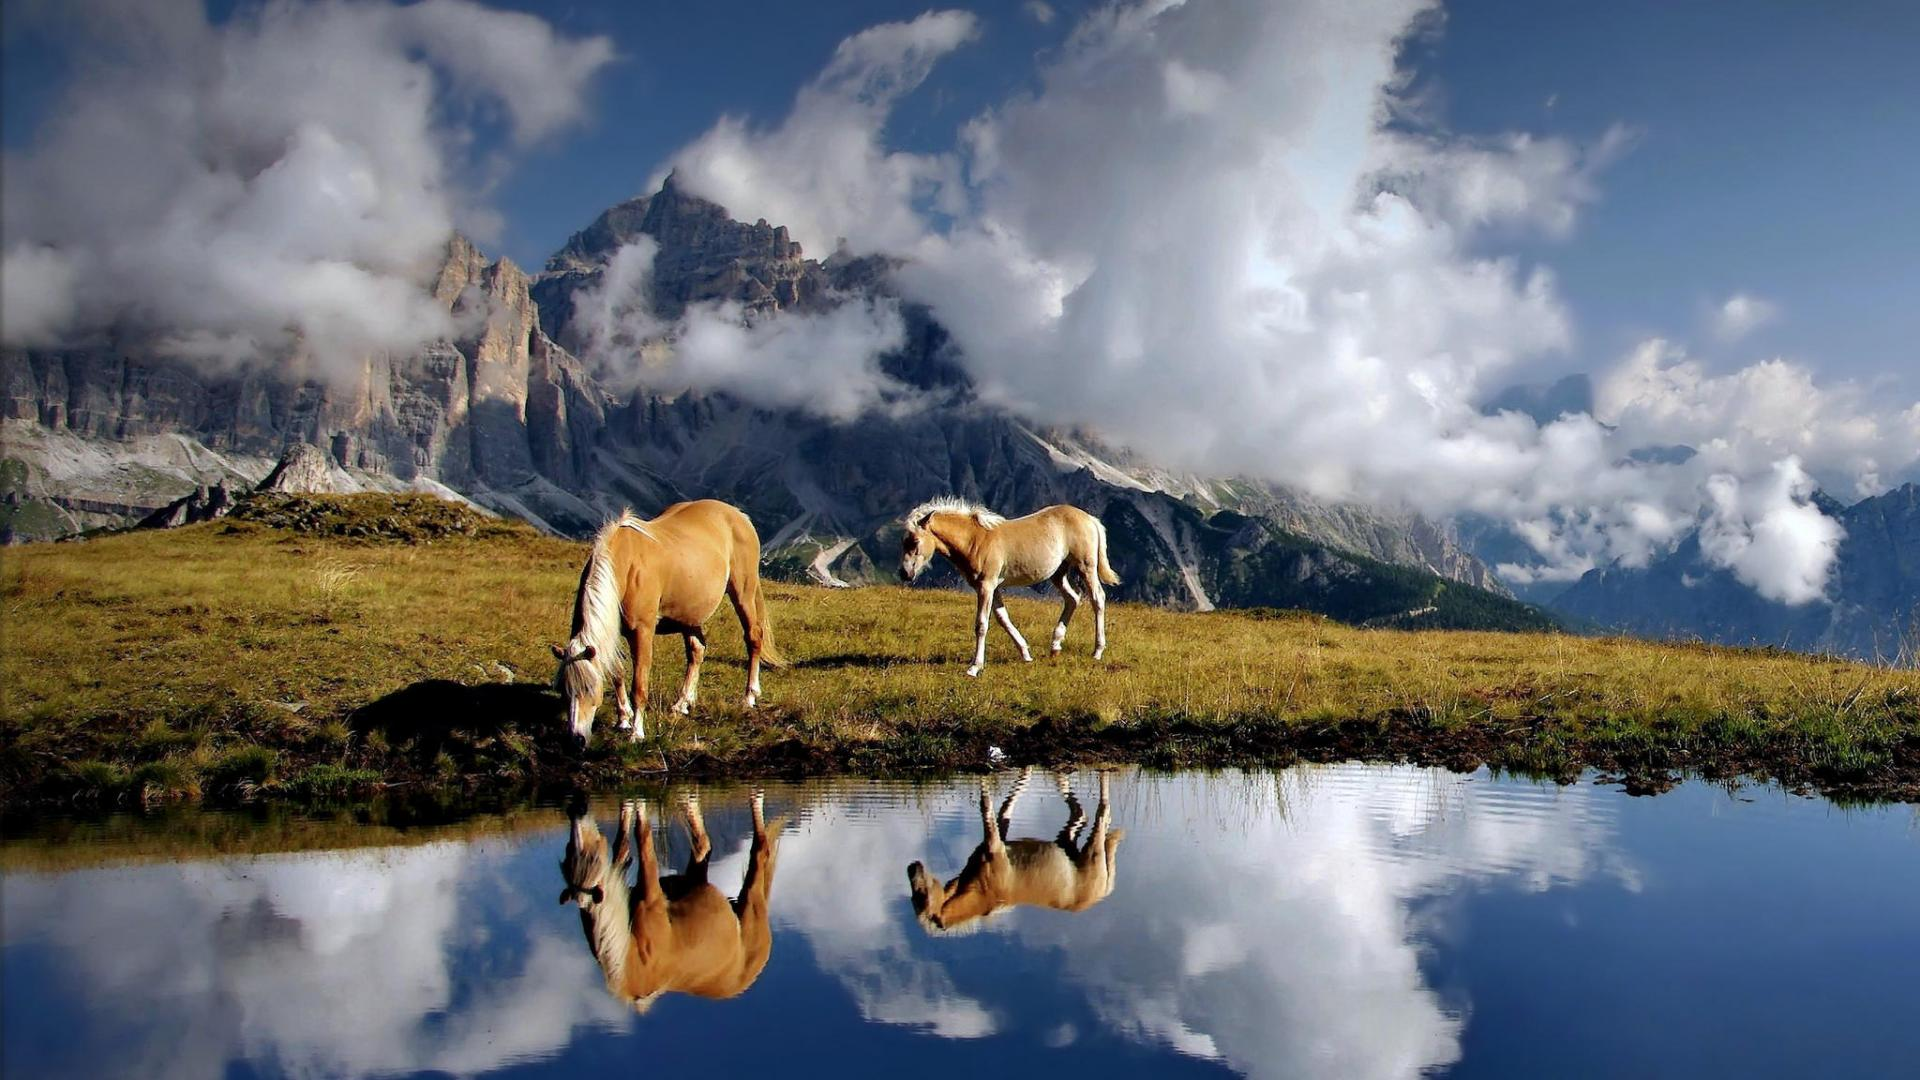 Horses Tag wallpapers Fog Animals Horses Hd Background Animal